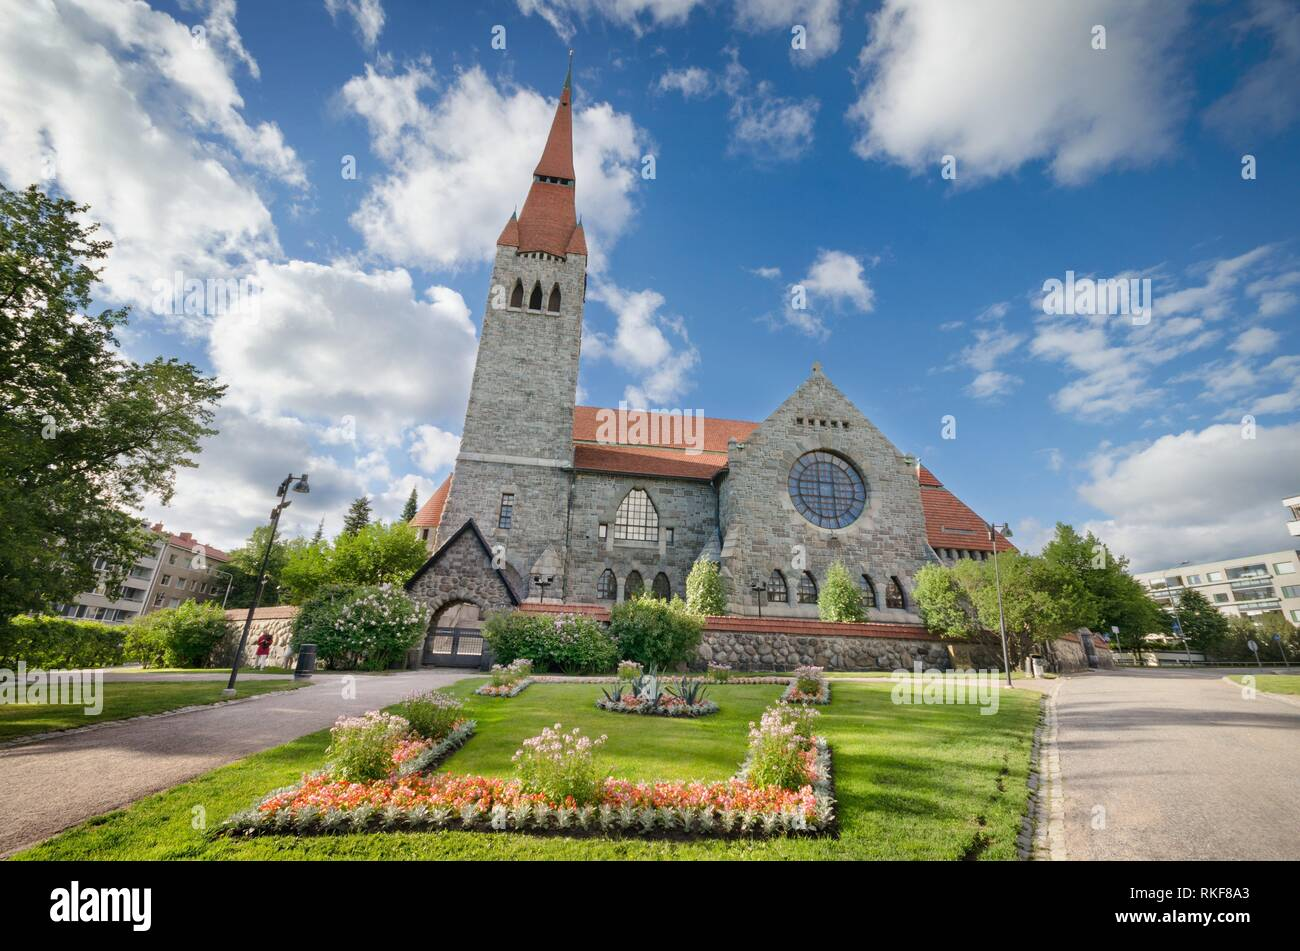 Tampere cathedral, Finland. - Stock Image